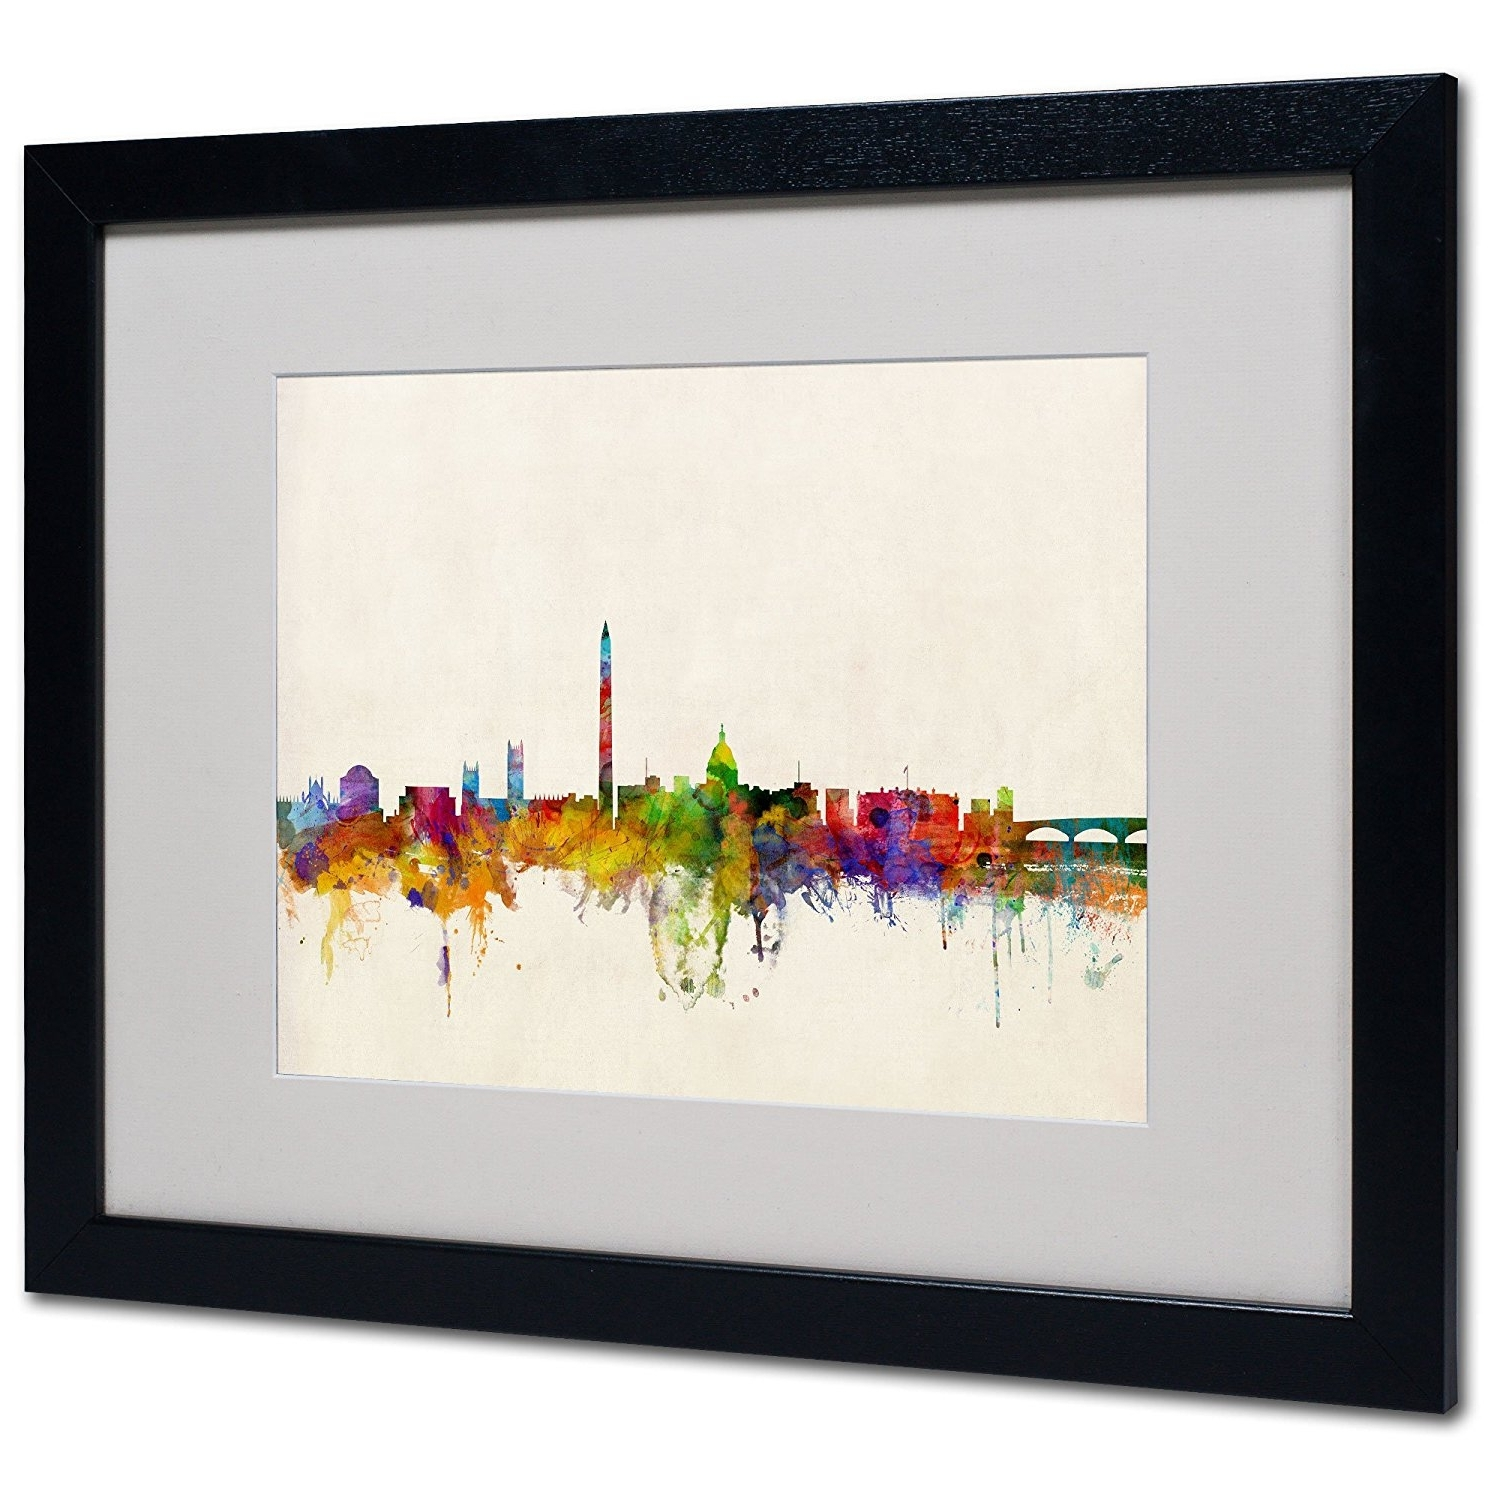 Amazon: Washington Dc Skylinemichael Tompsett, White Matte Within Most Popular Washington Dc Framed Art Prints (Gallery 2 of 15)